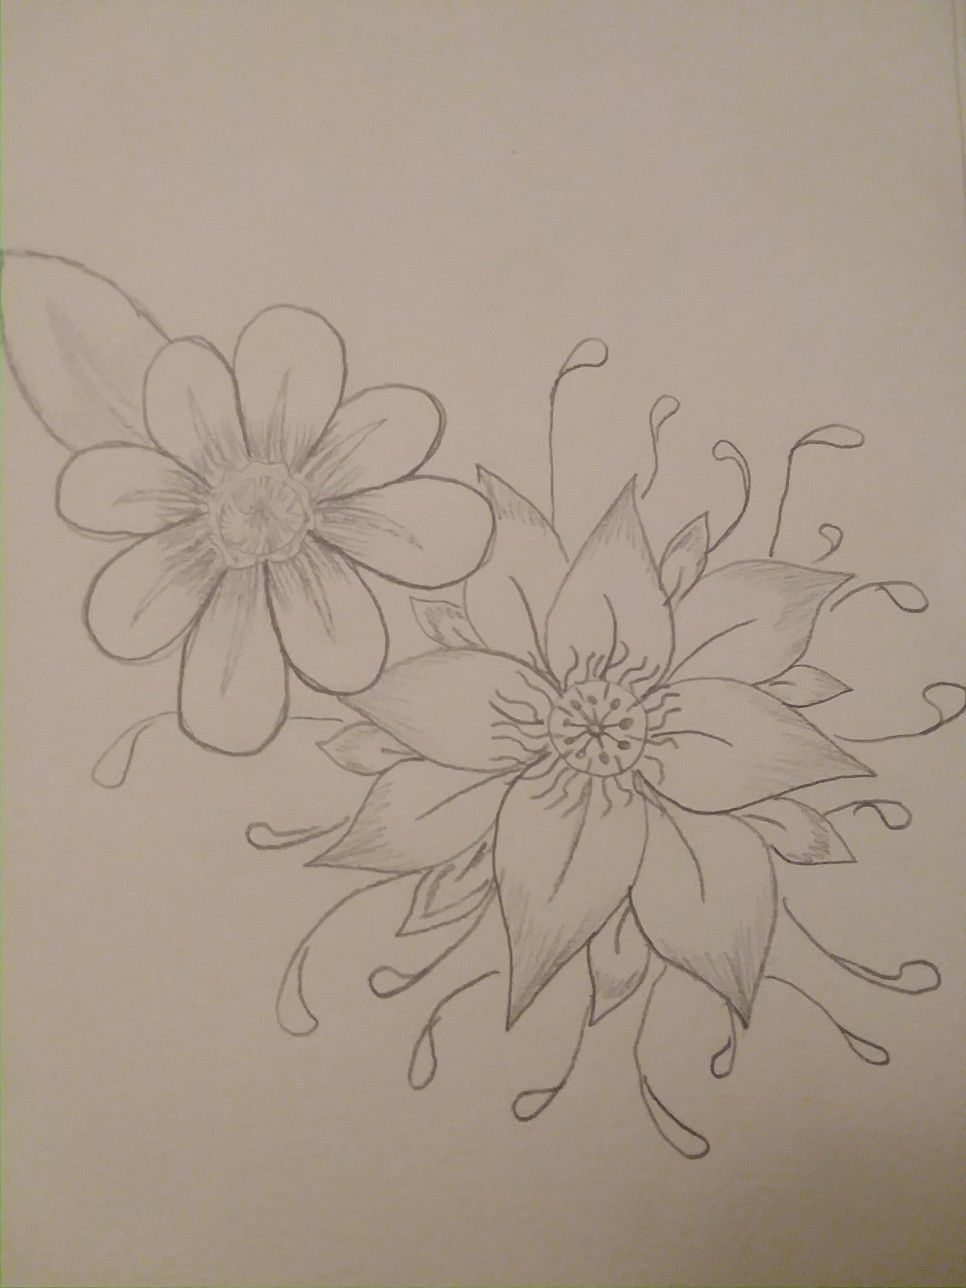 Pretty simple flower drawing drawing ideas pinterest simple pretty simple flower drawing mightylinksfo